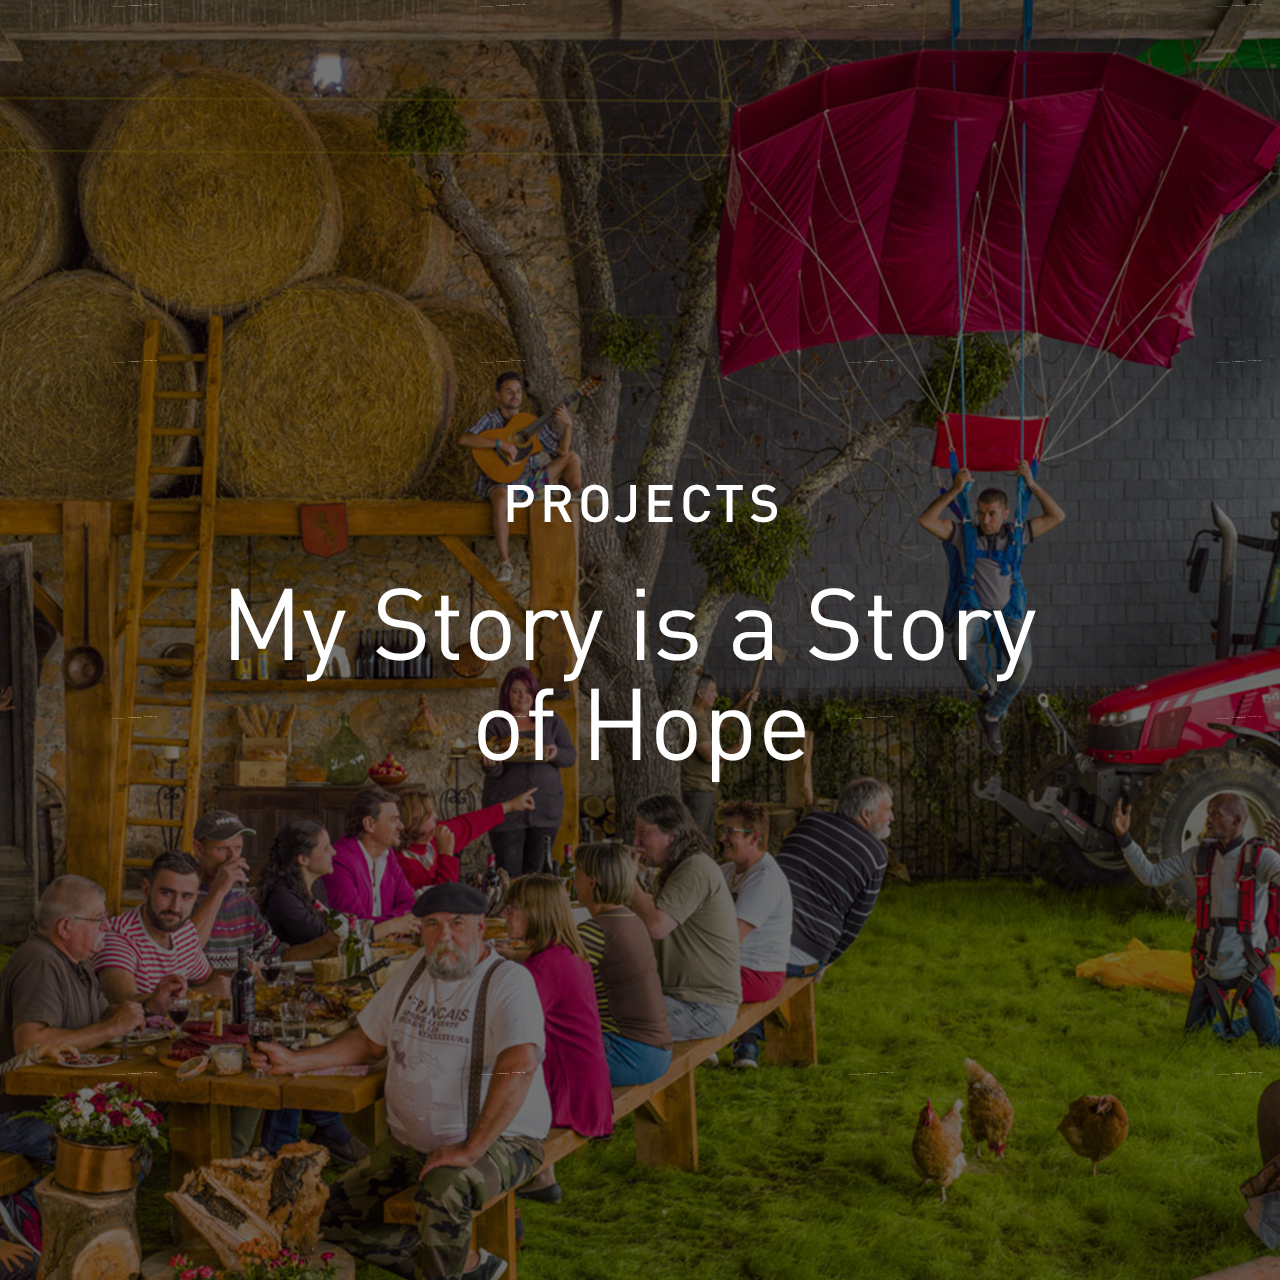 new_c_My Story is a Story of Hope - Projects